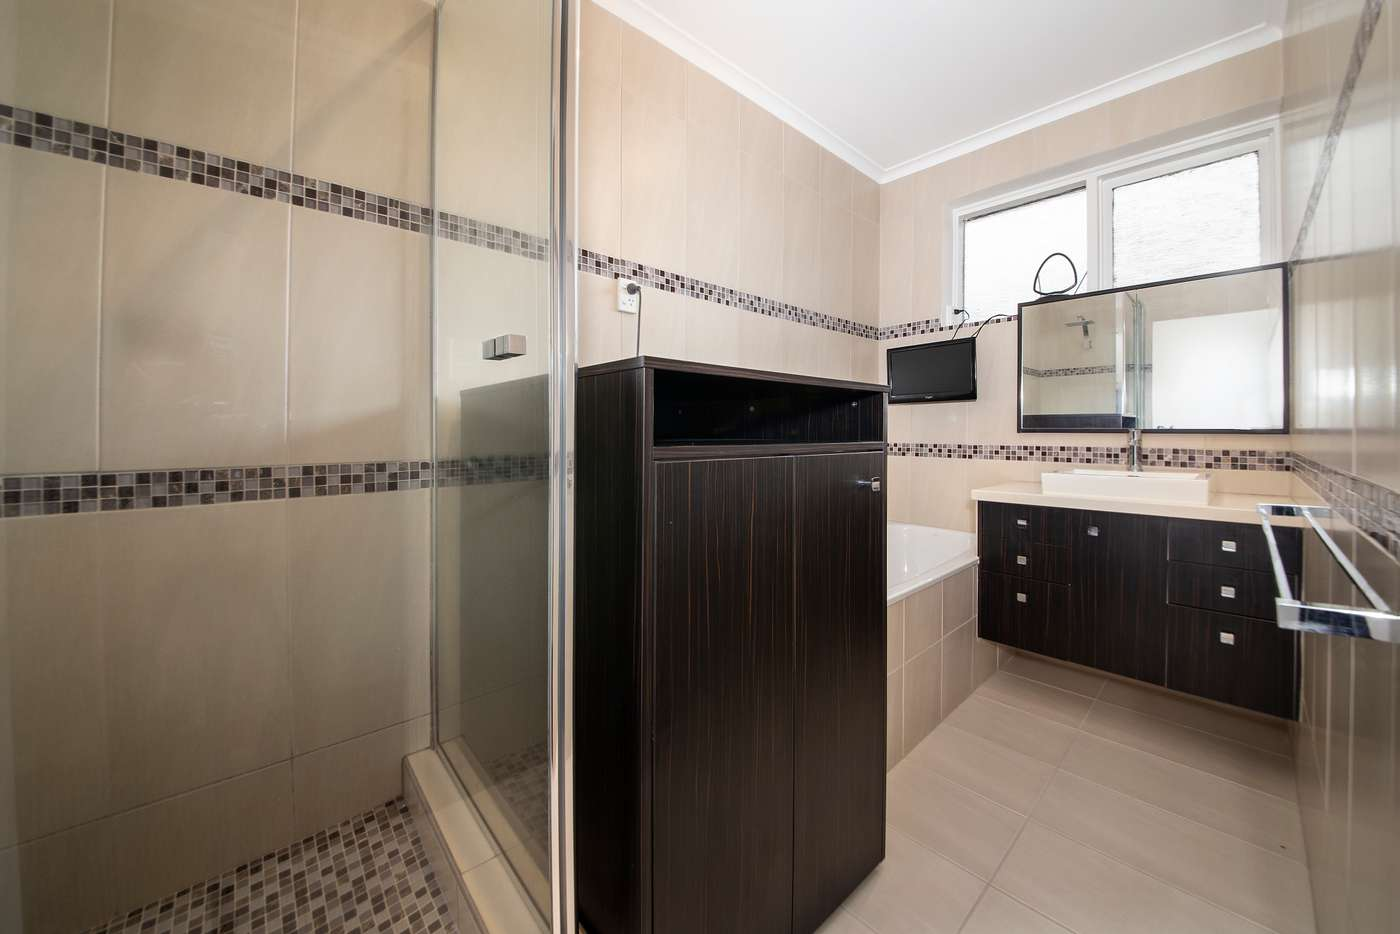 Sixth view of Homely apartment listing, 4/5 Rosedale  Avenue, Glen Huntly VIC 3163